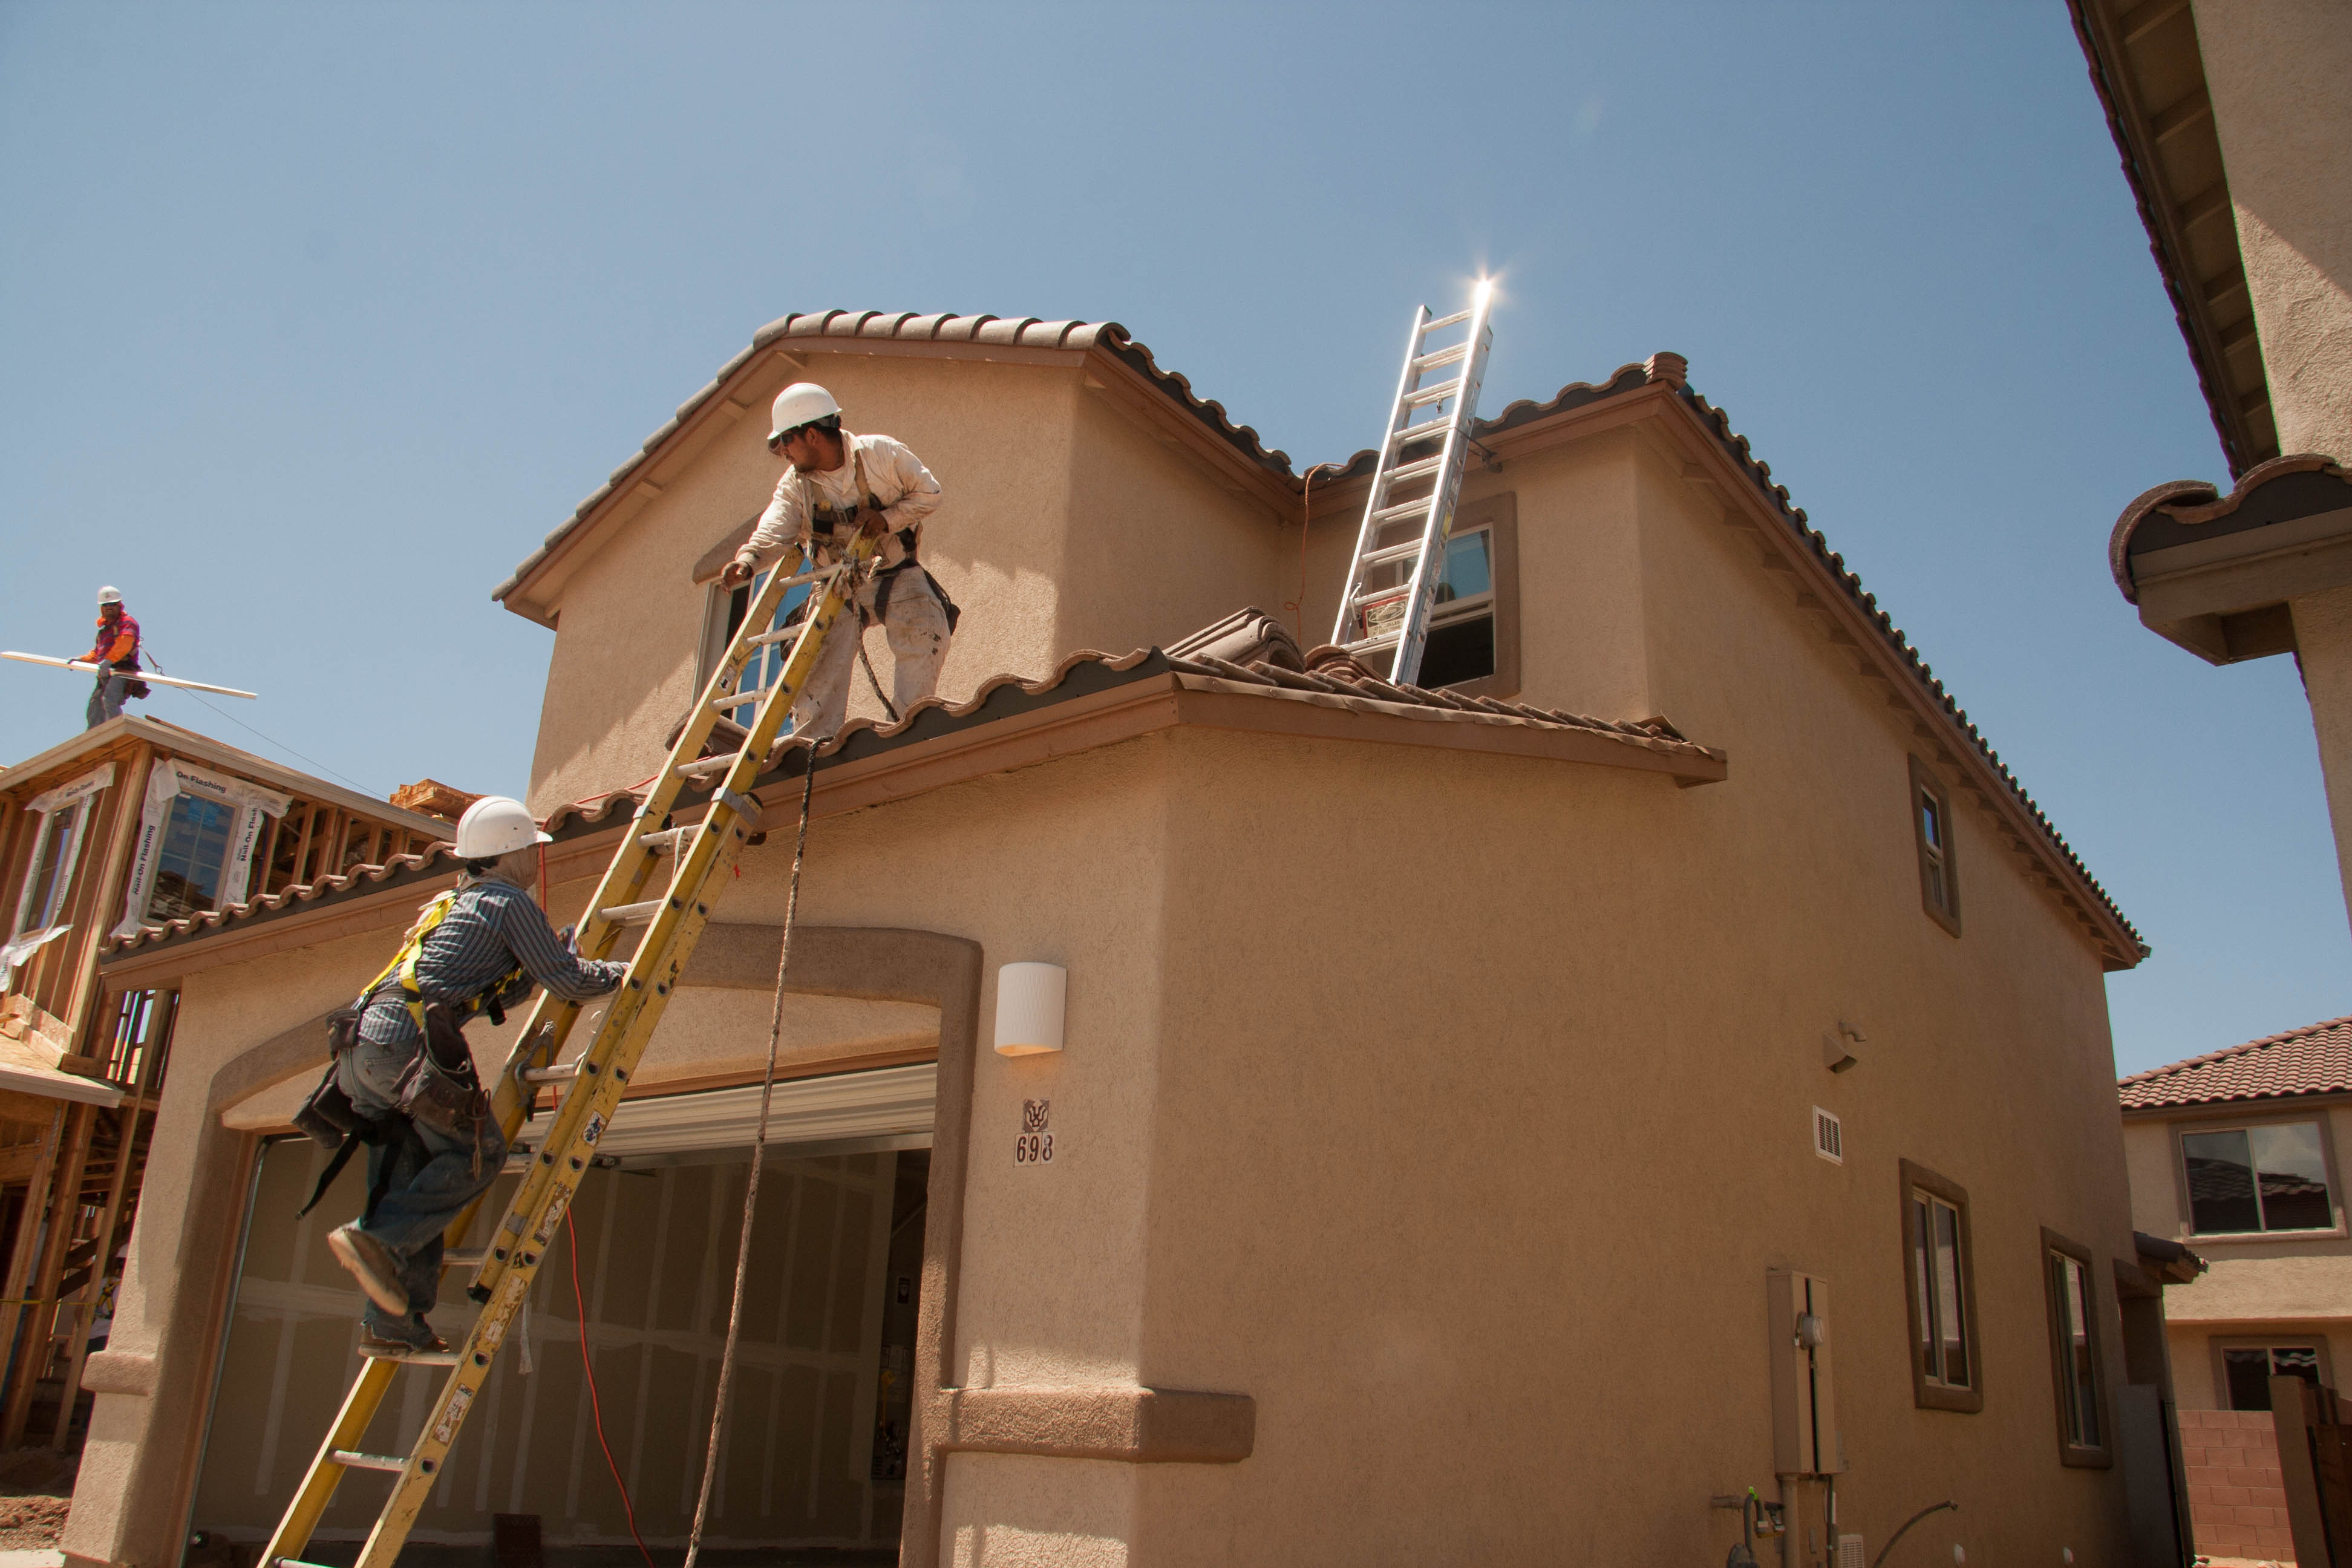 File:Residential construction site - fall prevention ...